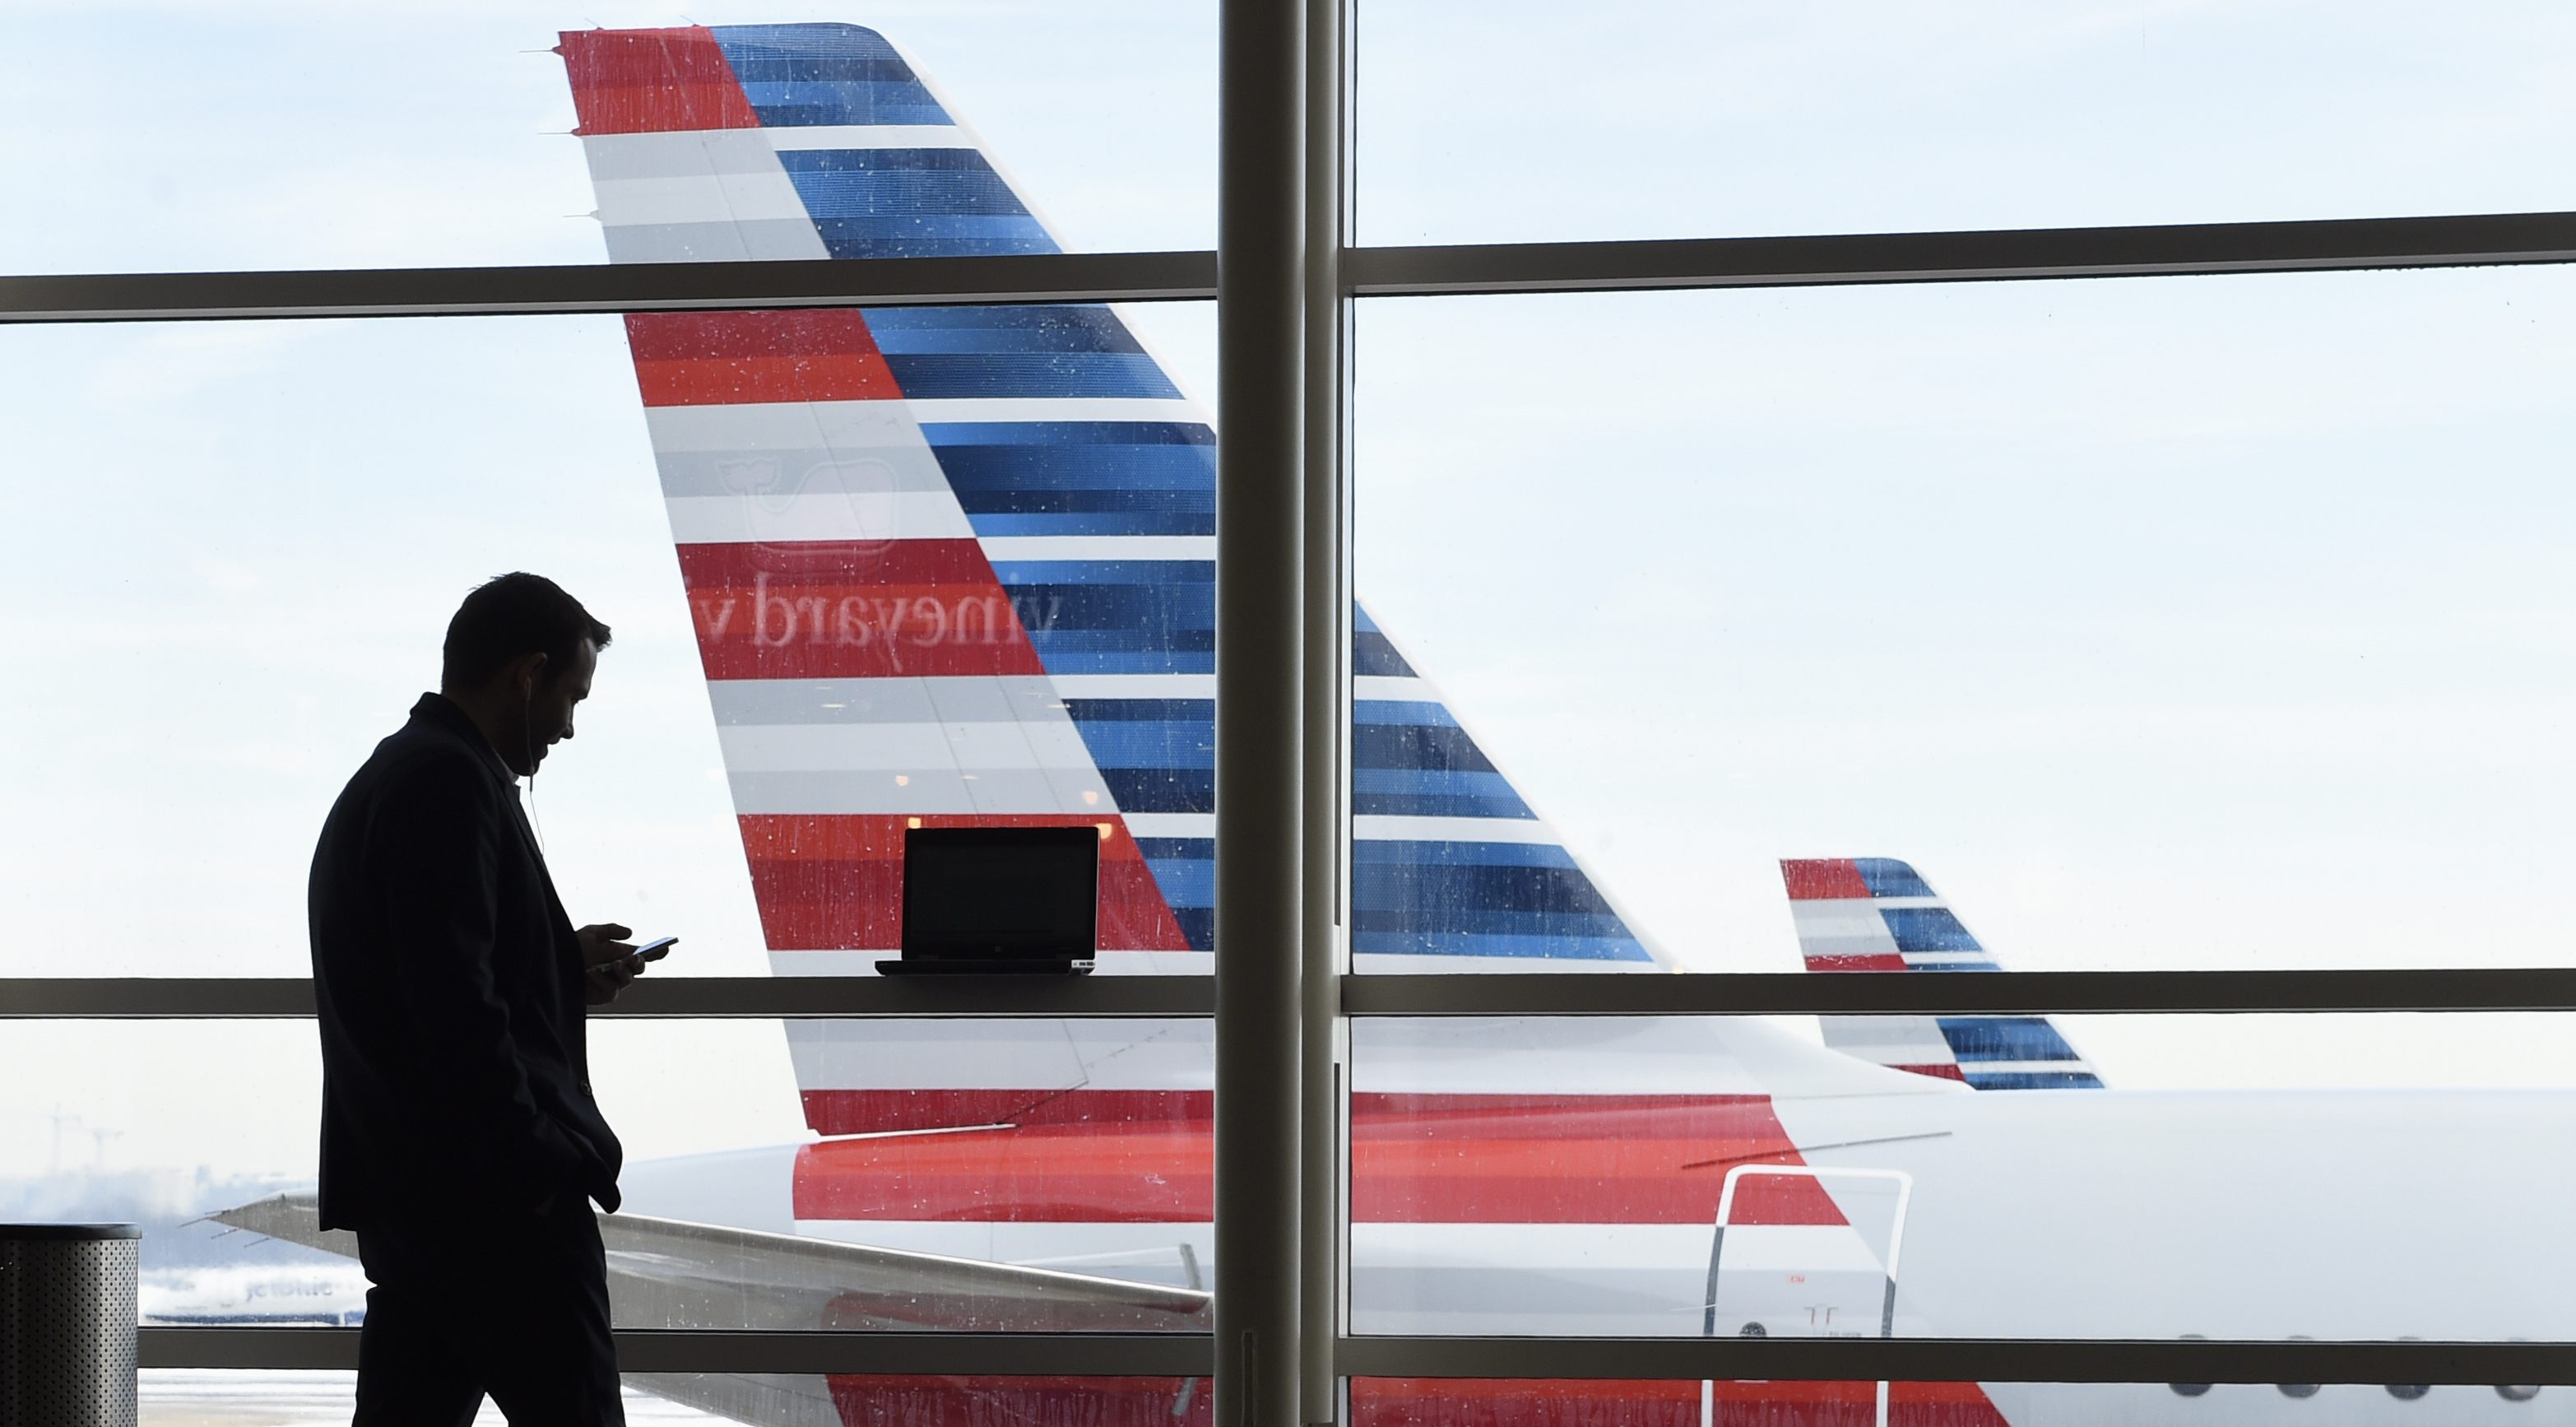 FILE - In this Jan. 25, 2016, file photo, a passenger talks on the phone as American Airlines jets sit parked at their gates at Washington's Ronald Reagan National Airport. American Airlines is giving more details on changes that will reward the highest-paying passengers, not just those who fly the most miles, announcing Monday, June 6, 2016, that beginning on Aug. 1, passengers will earn points based on the price of their ticket. Elite-status members of the AAdvantage loyalty program will earn even more points per dollar spent. (AP Photo/Susan Walsh, File)